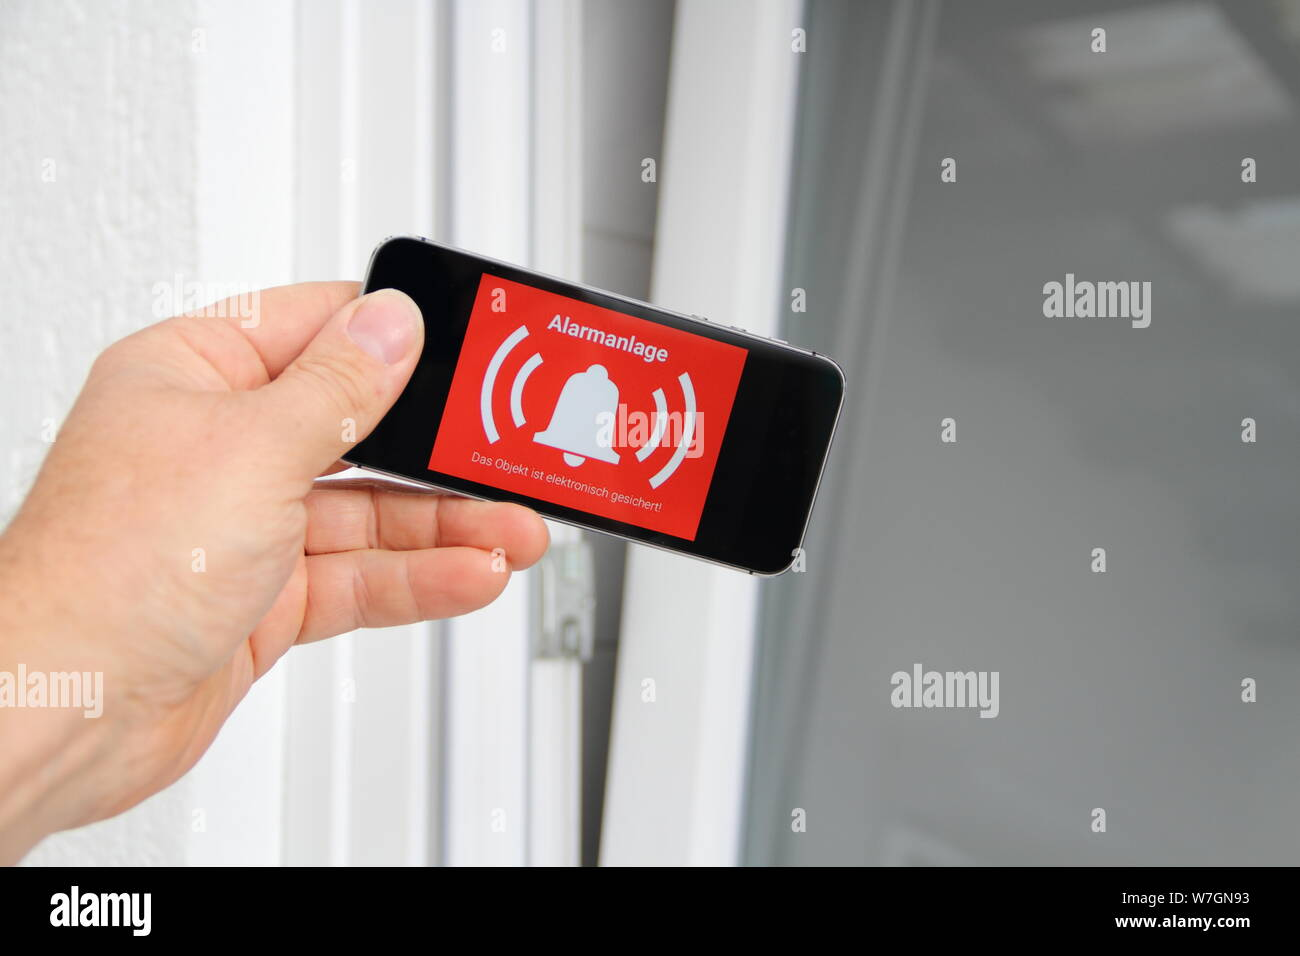 """Mobile phone with a picture alarm system and the text """"Alarm"""" Stock Photo"""